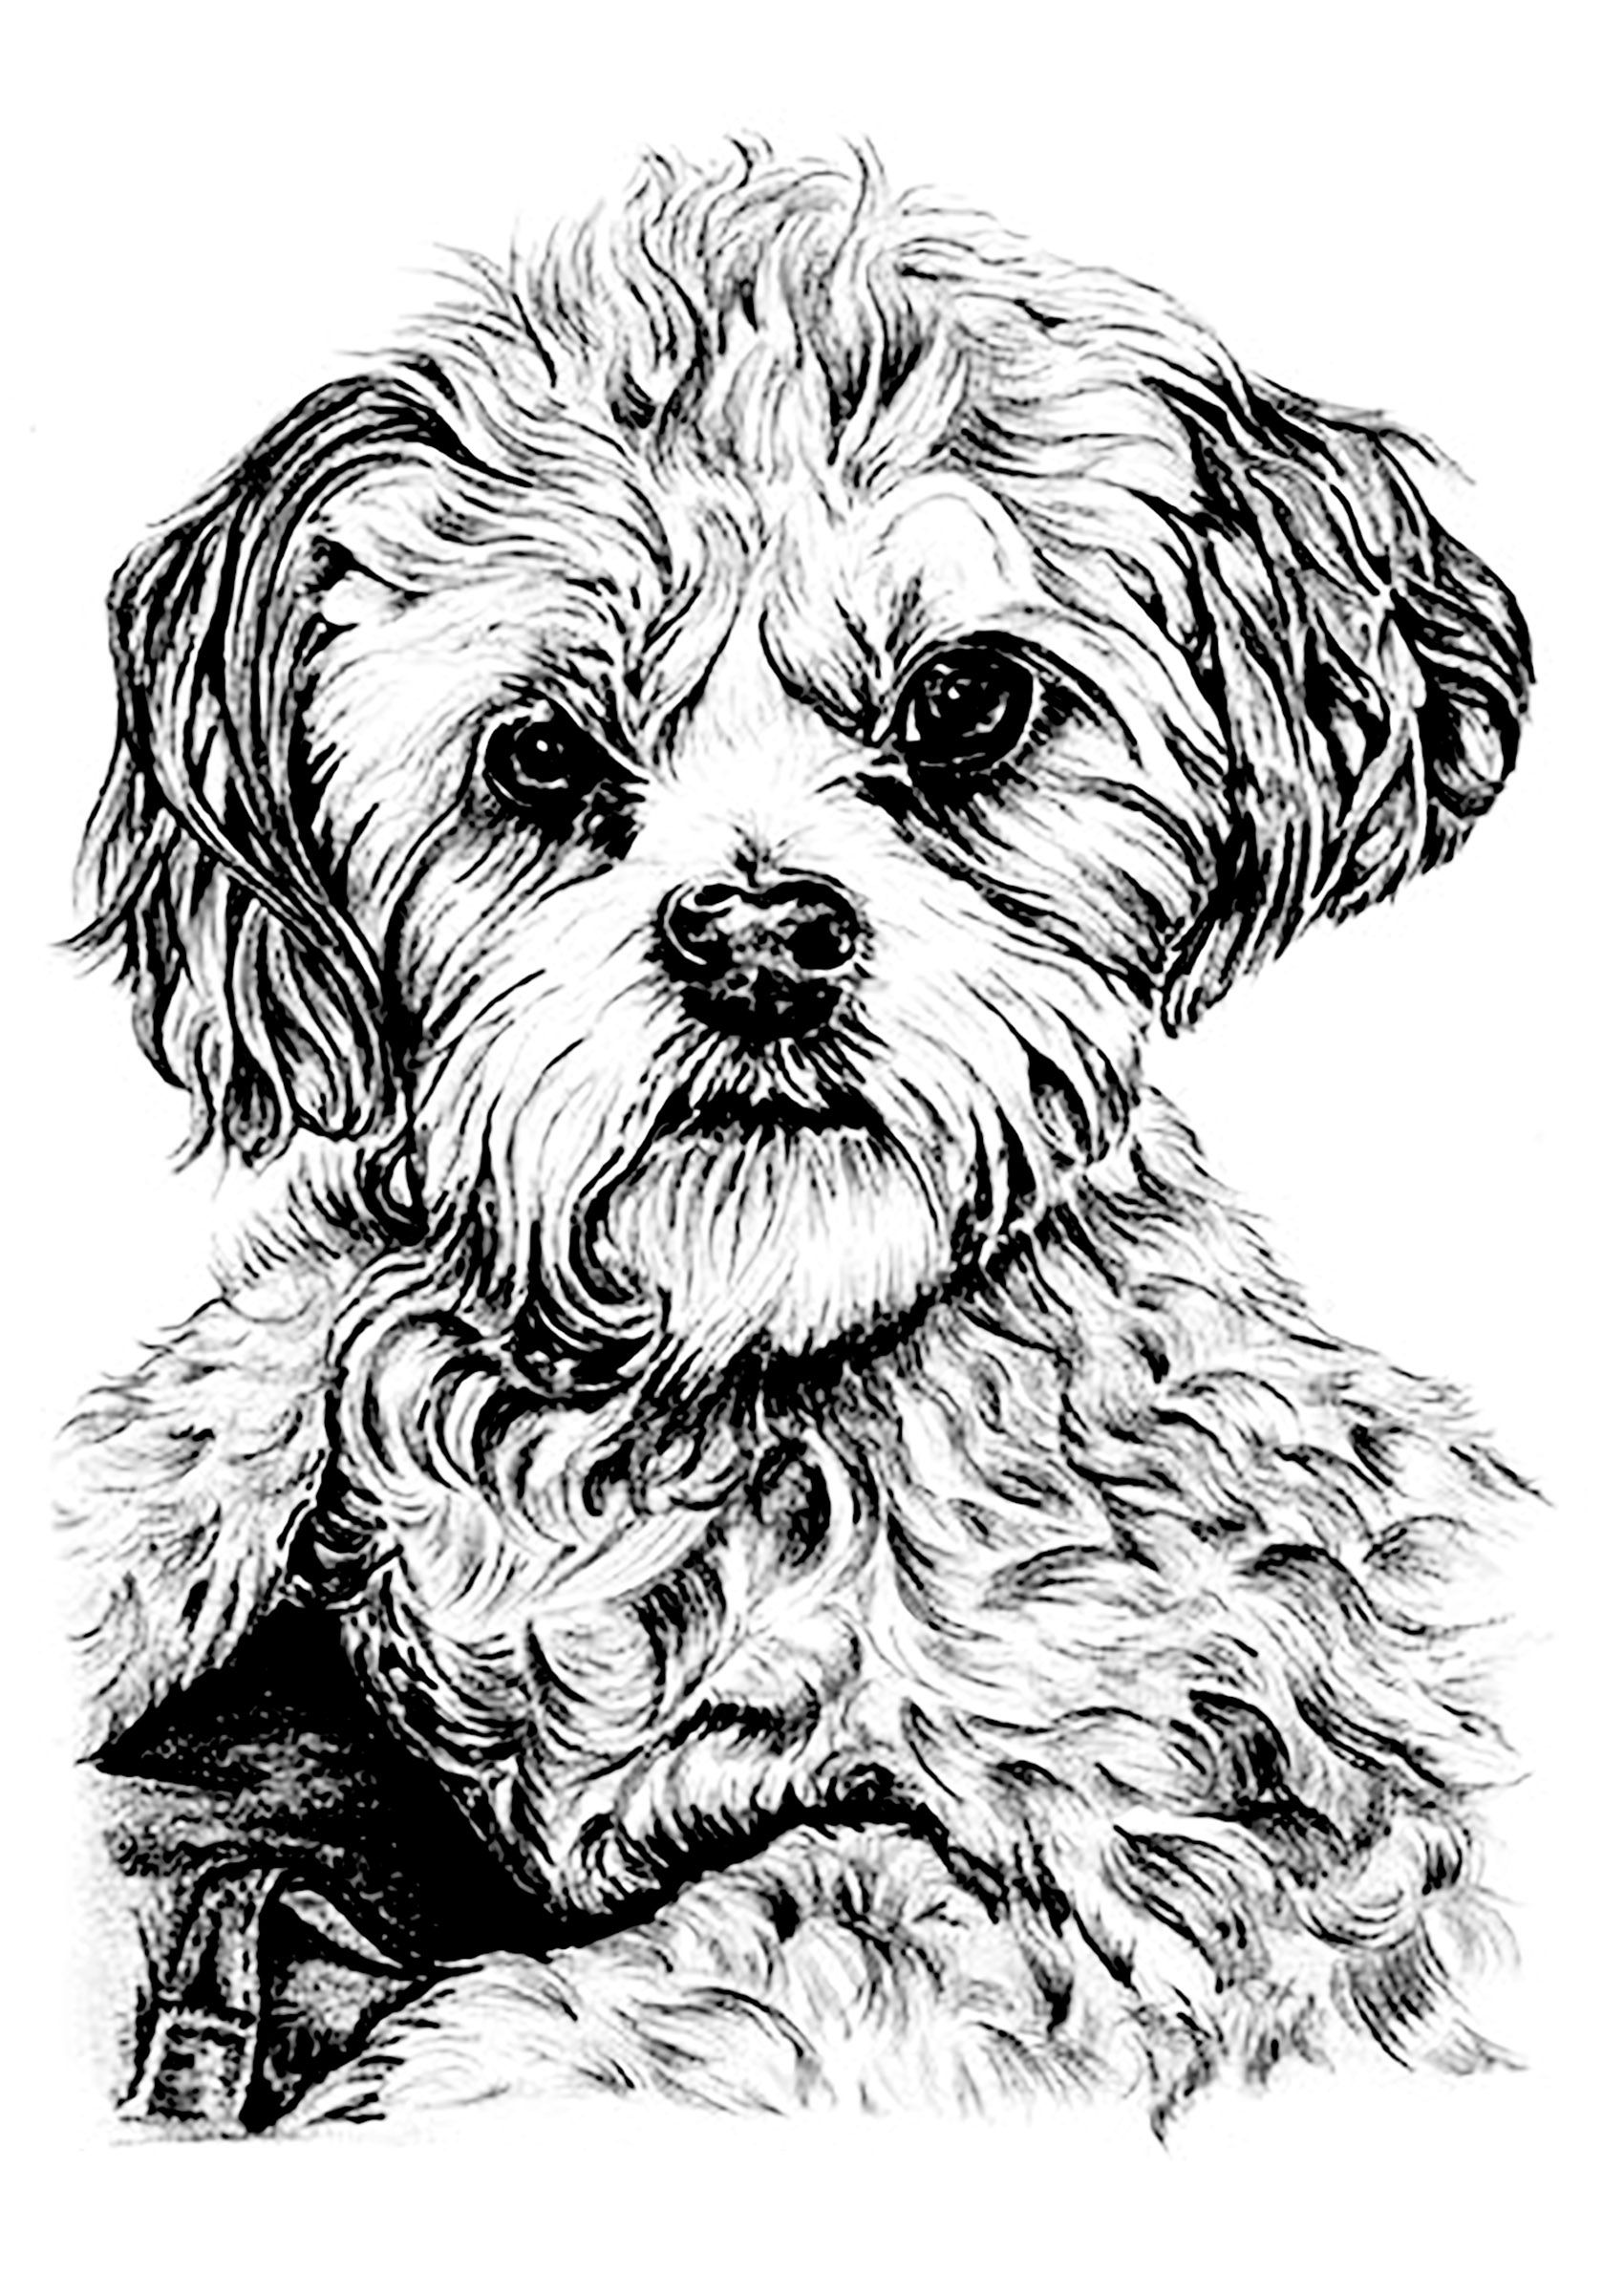 Here Are Complex Coloring Pages For Adults Of Animals Different Levels Of Details And Styles Are Available From The Dog Coloring Page Dog Drawing Dog Sketch